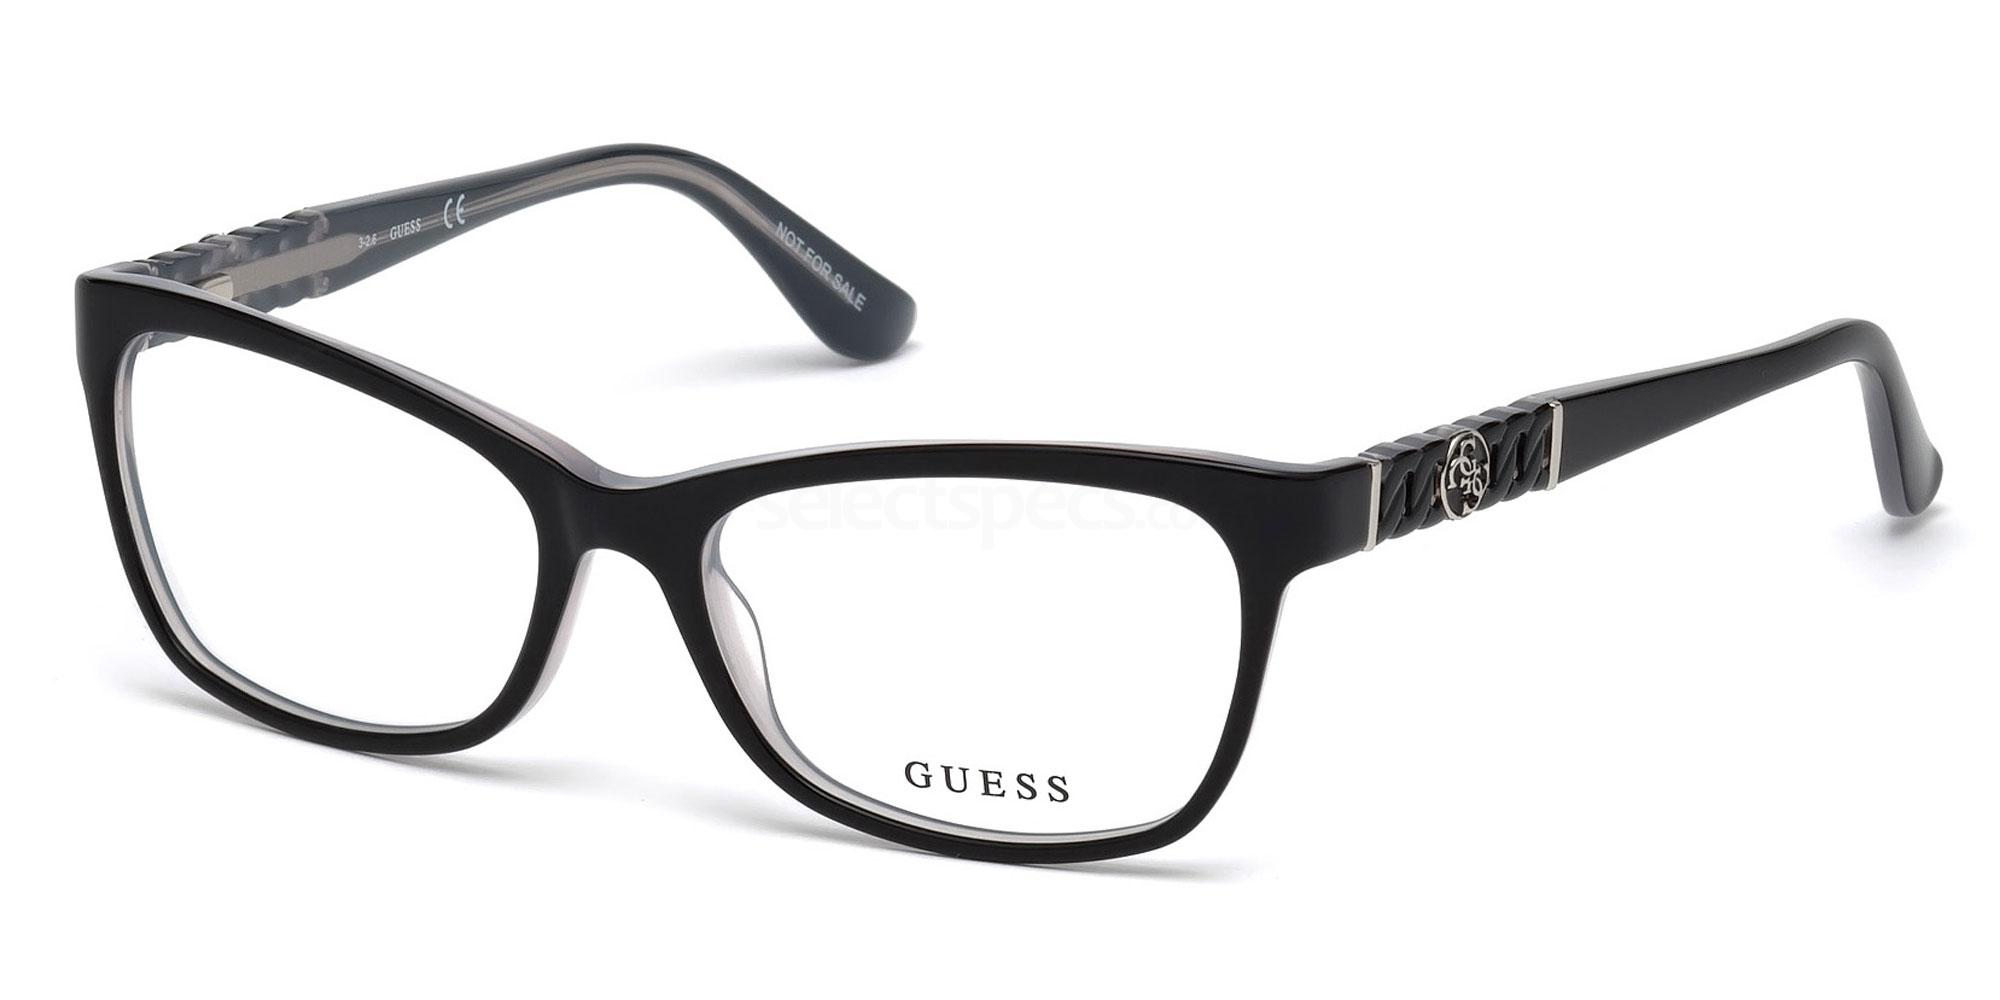 001 GU2606 Glasses, Guess